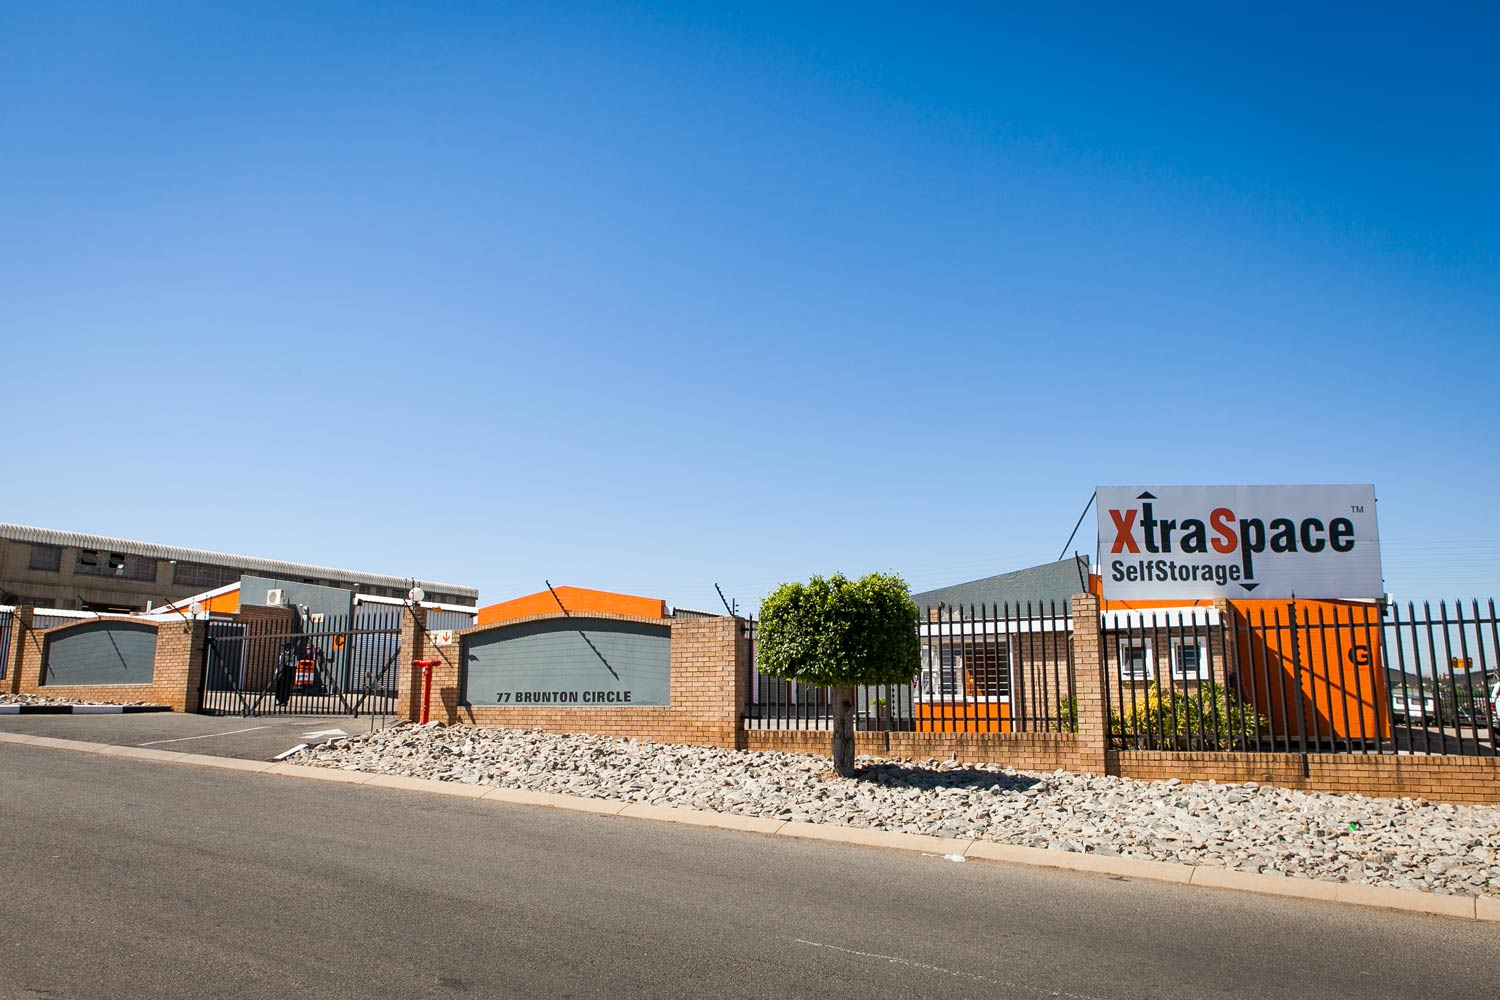 Street view of the XtraSpace Edenvale South storage facility